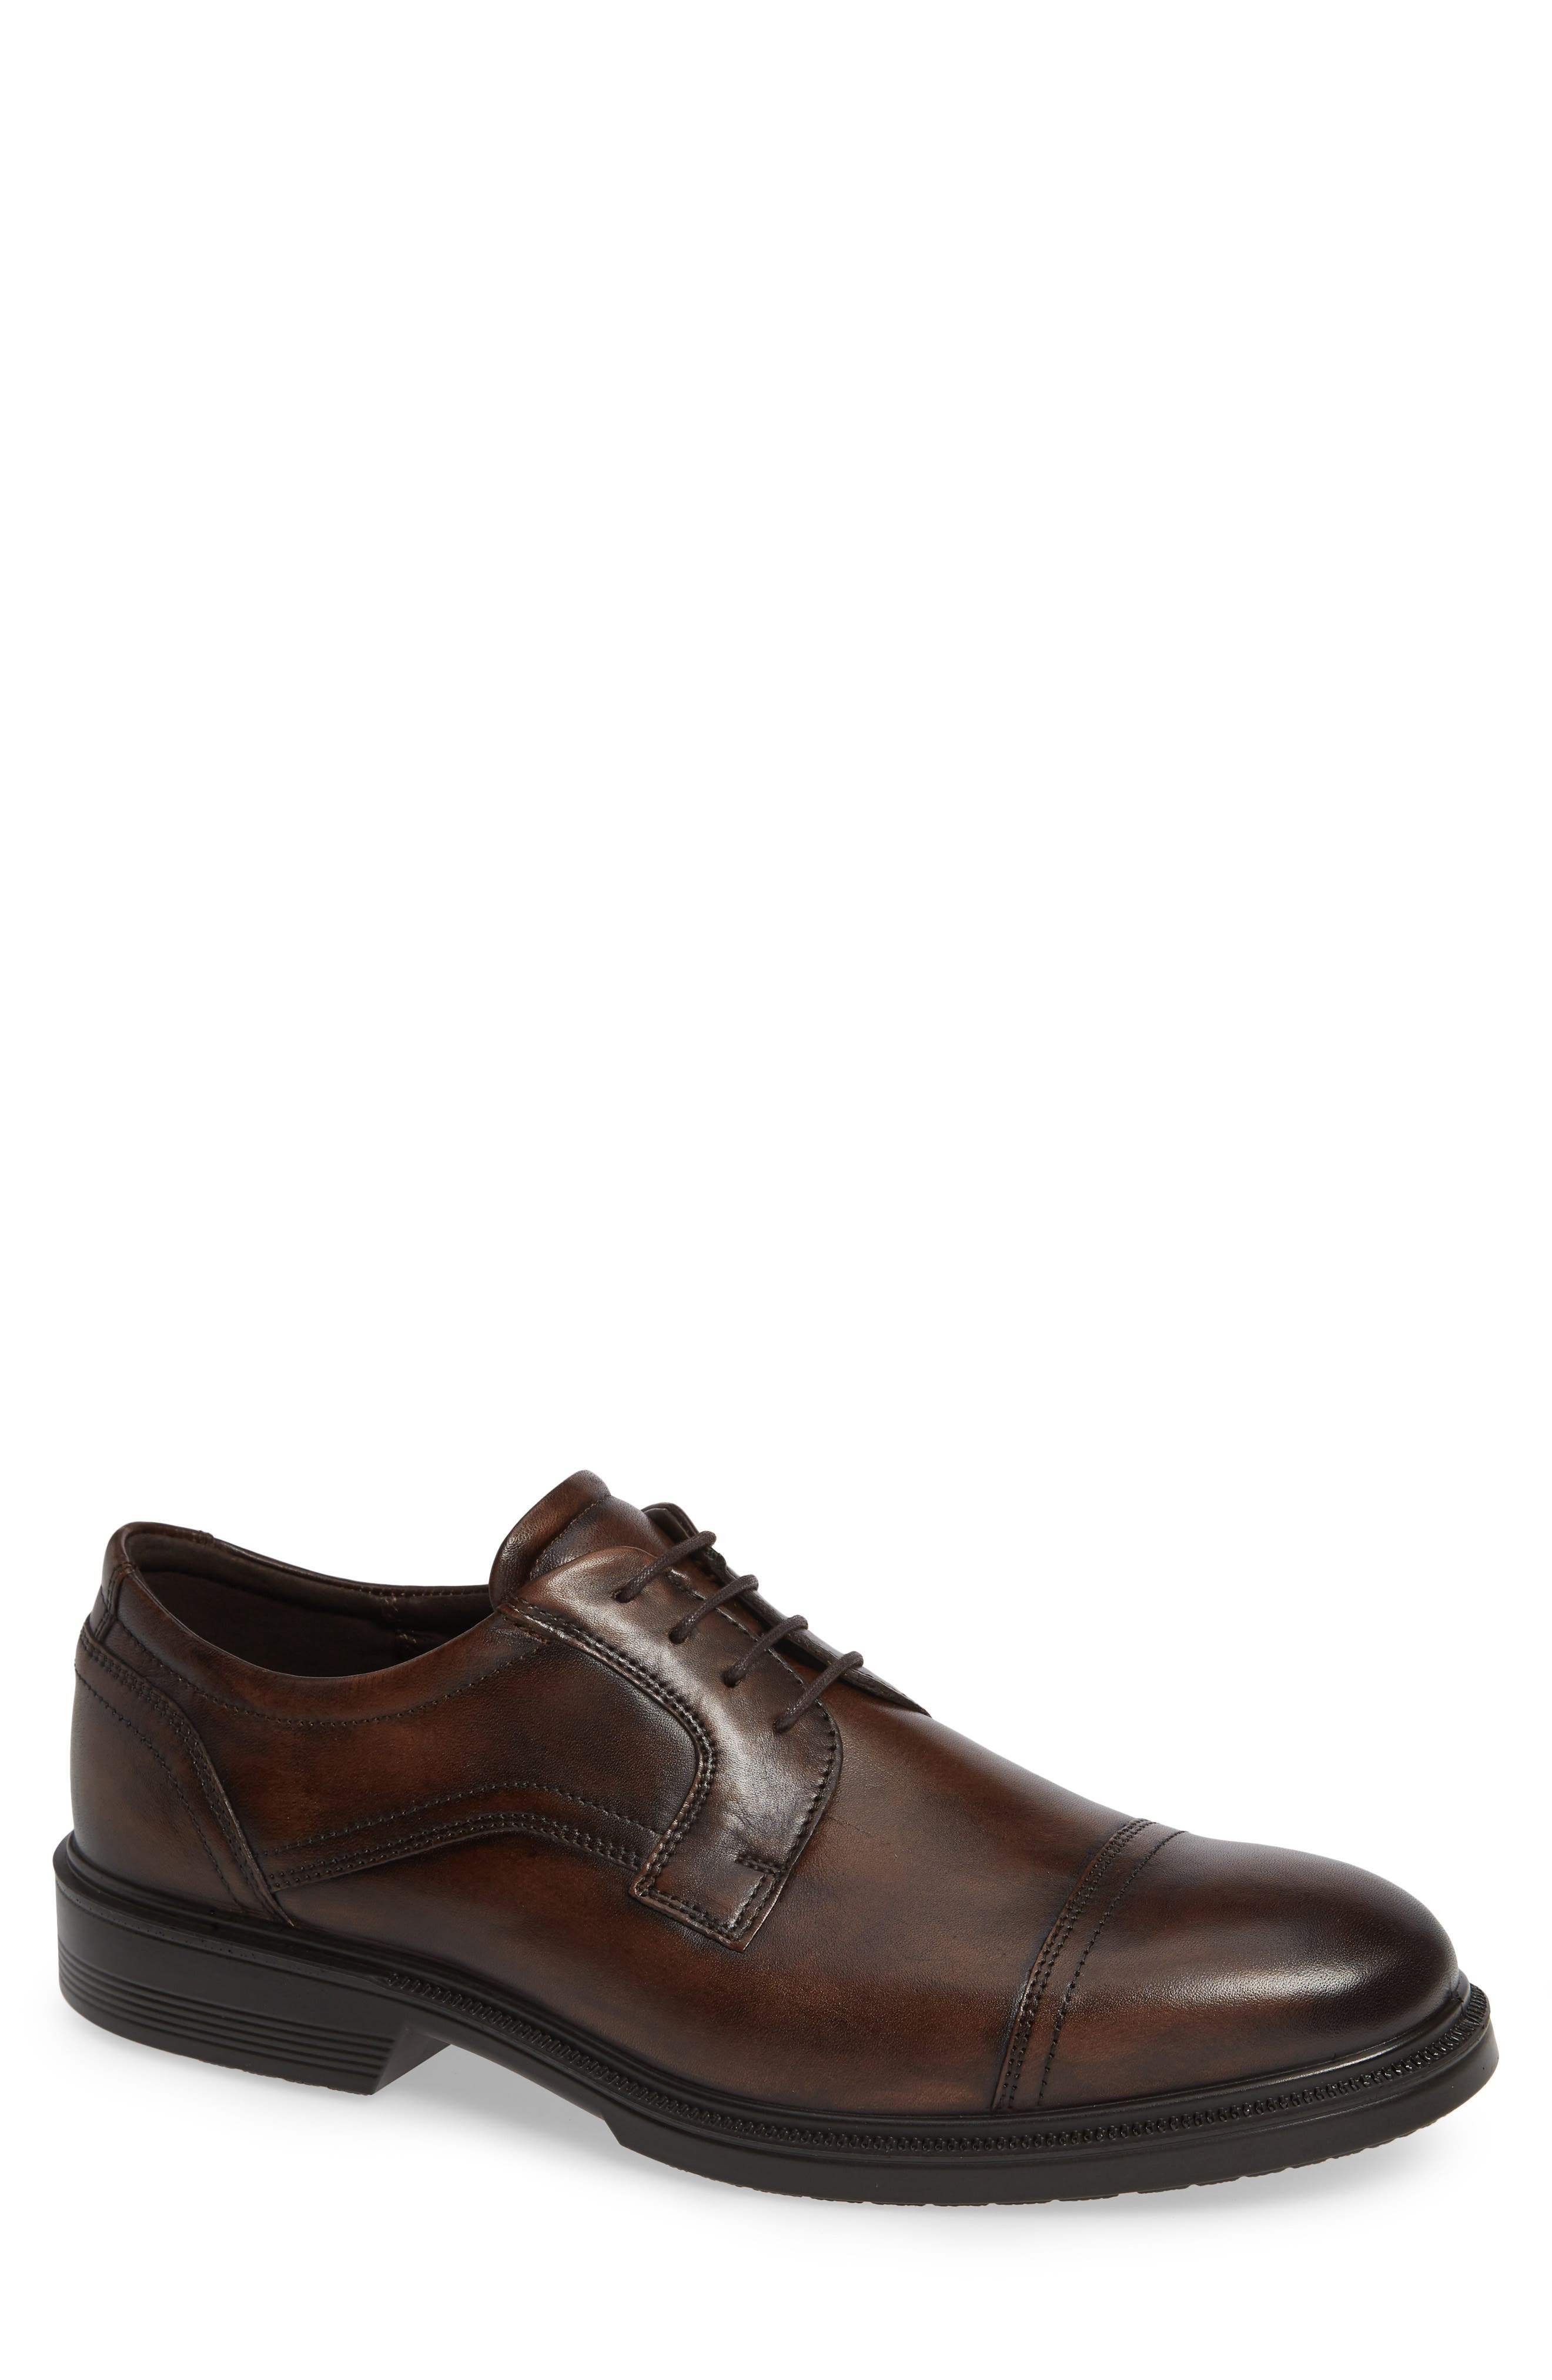 Lisbon Cap Toe Derby,                         Main,                         color, 200